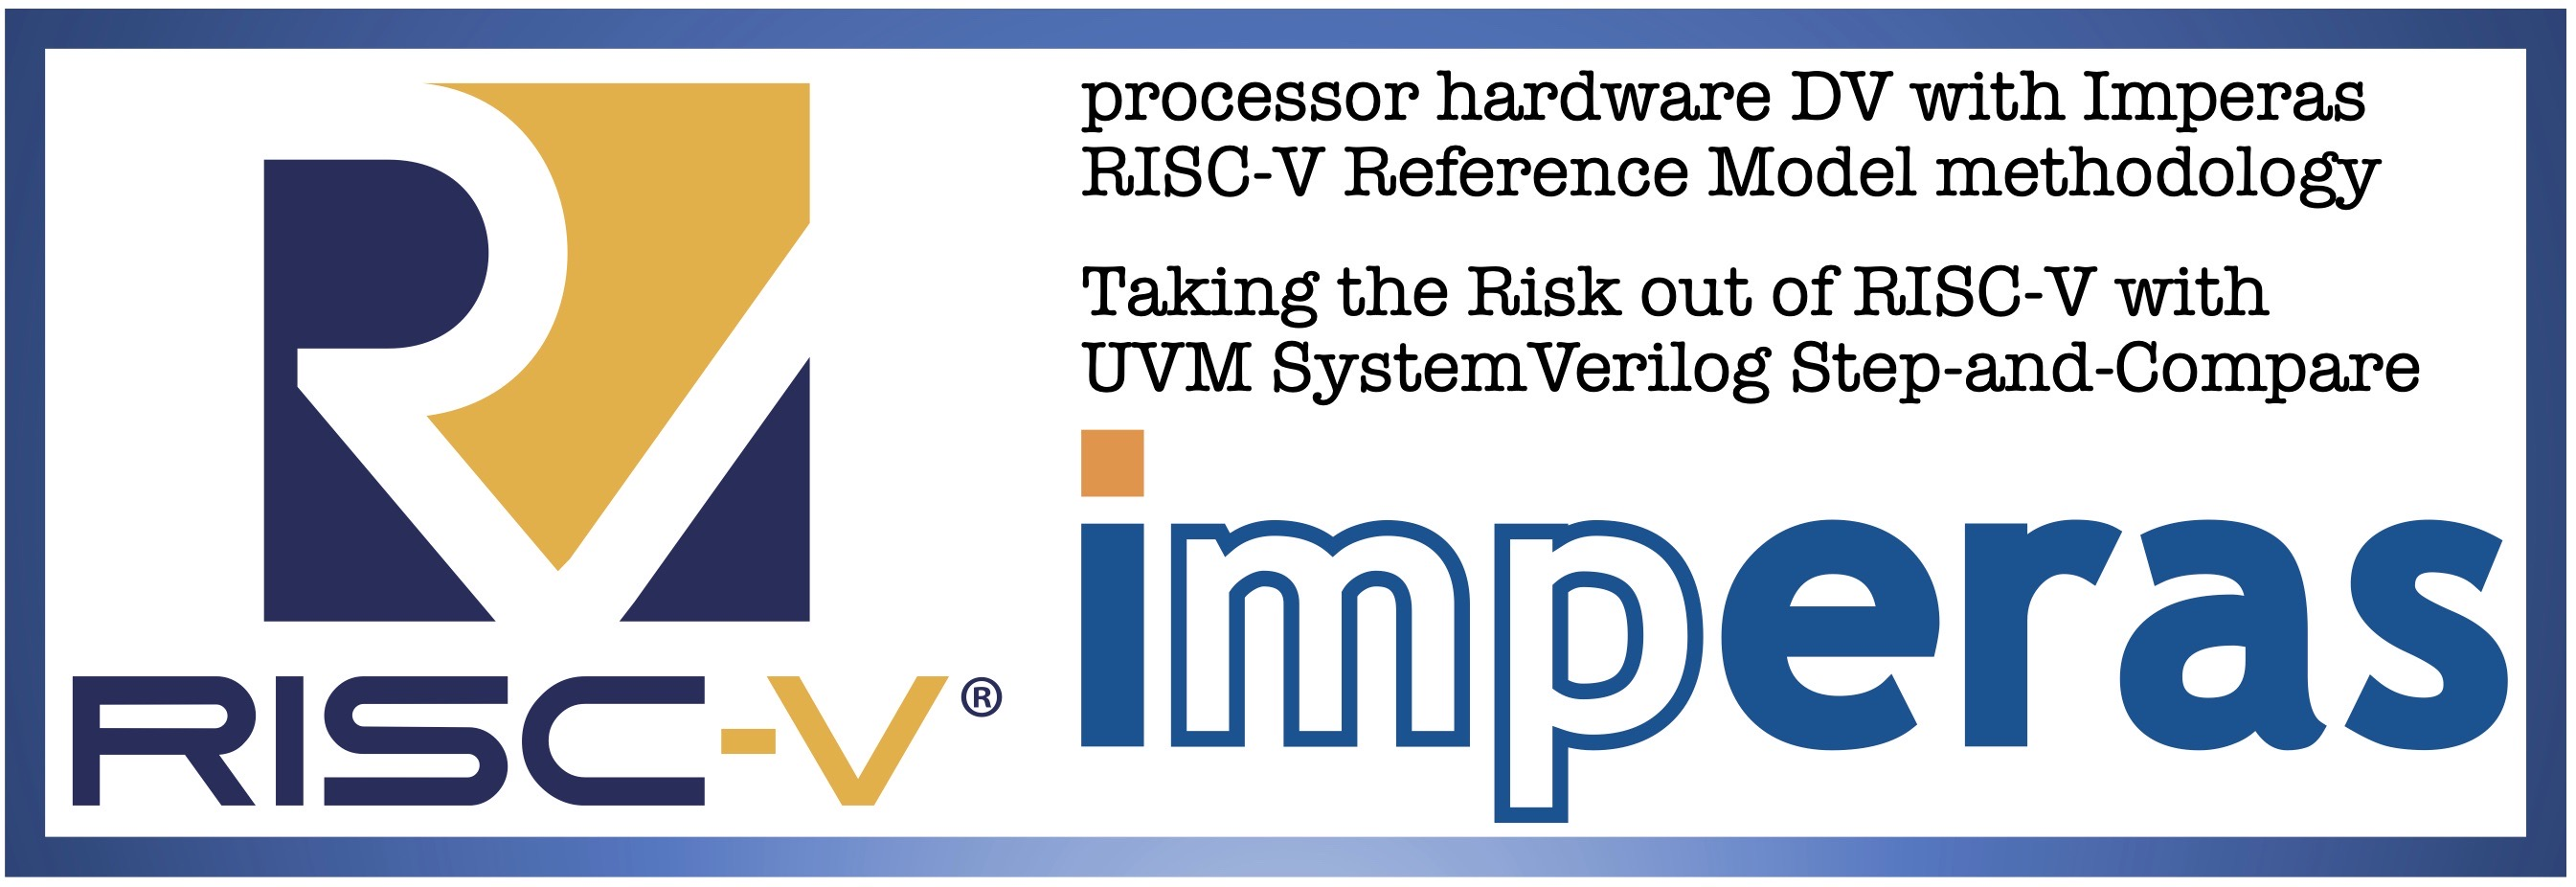 Imperas RISC-V Reference Model